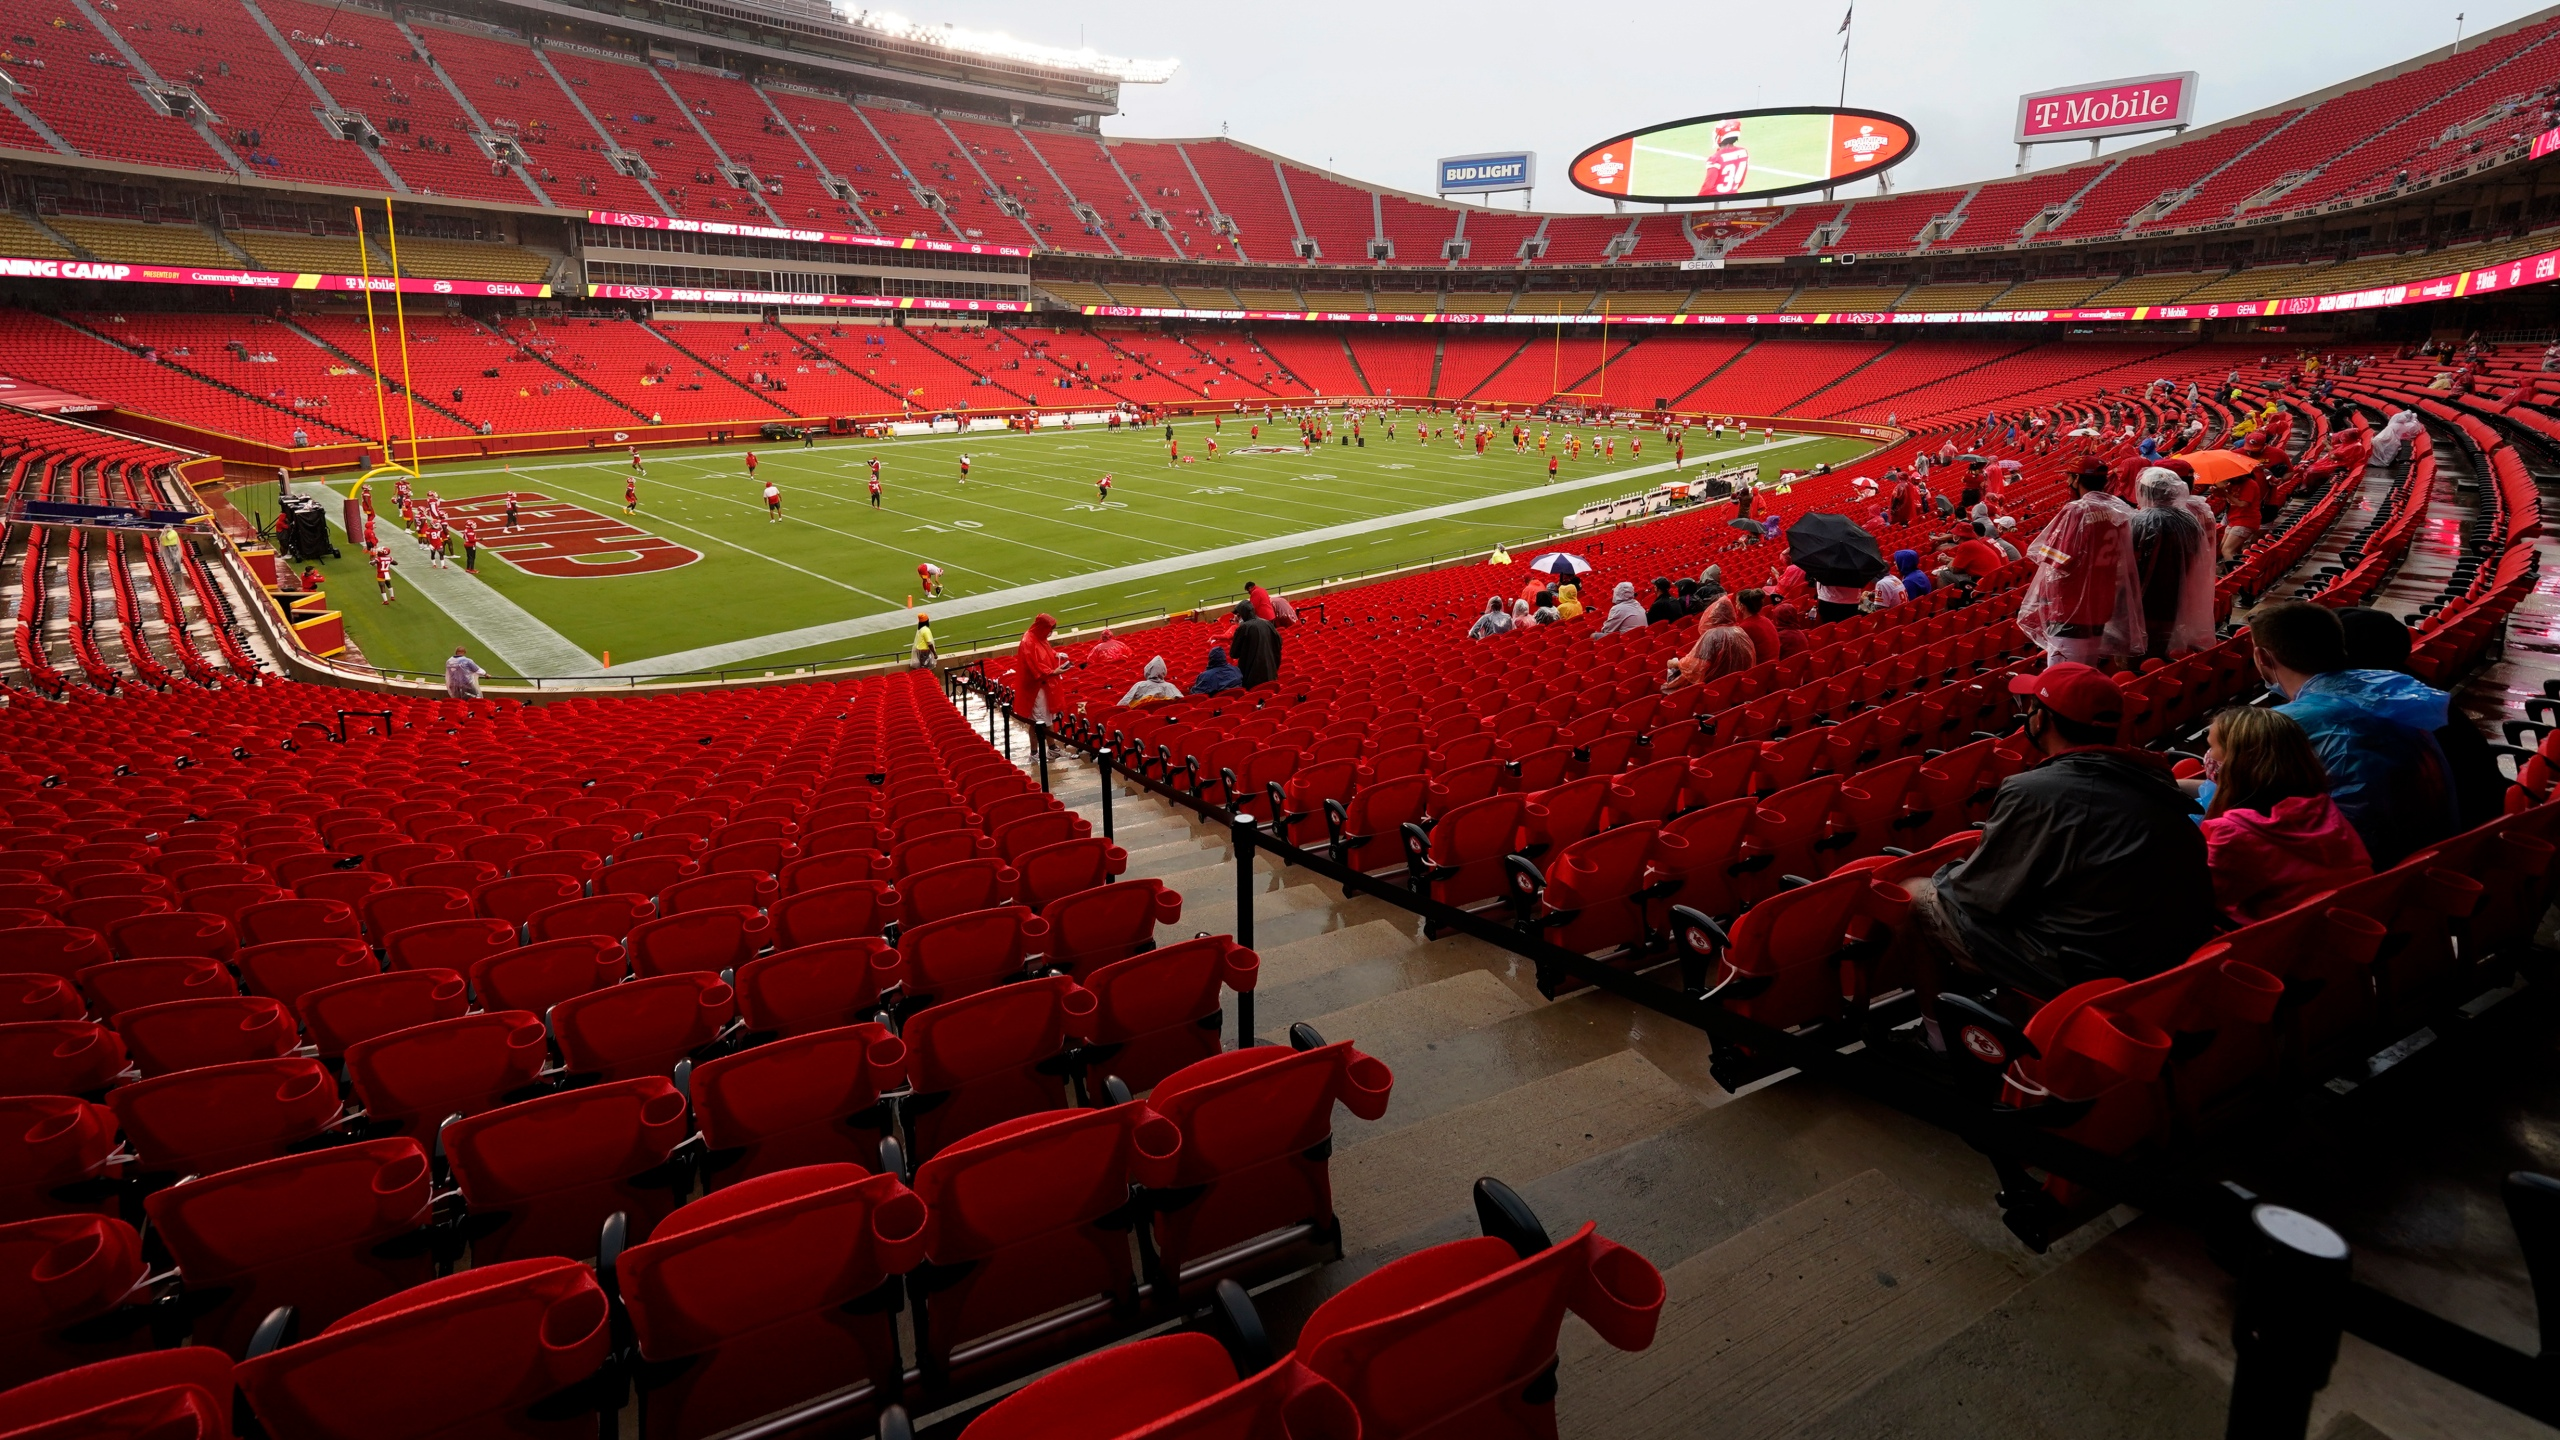 Picture of inside Arrowhead